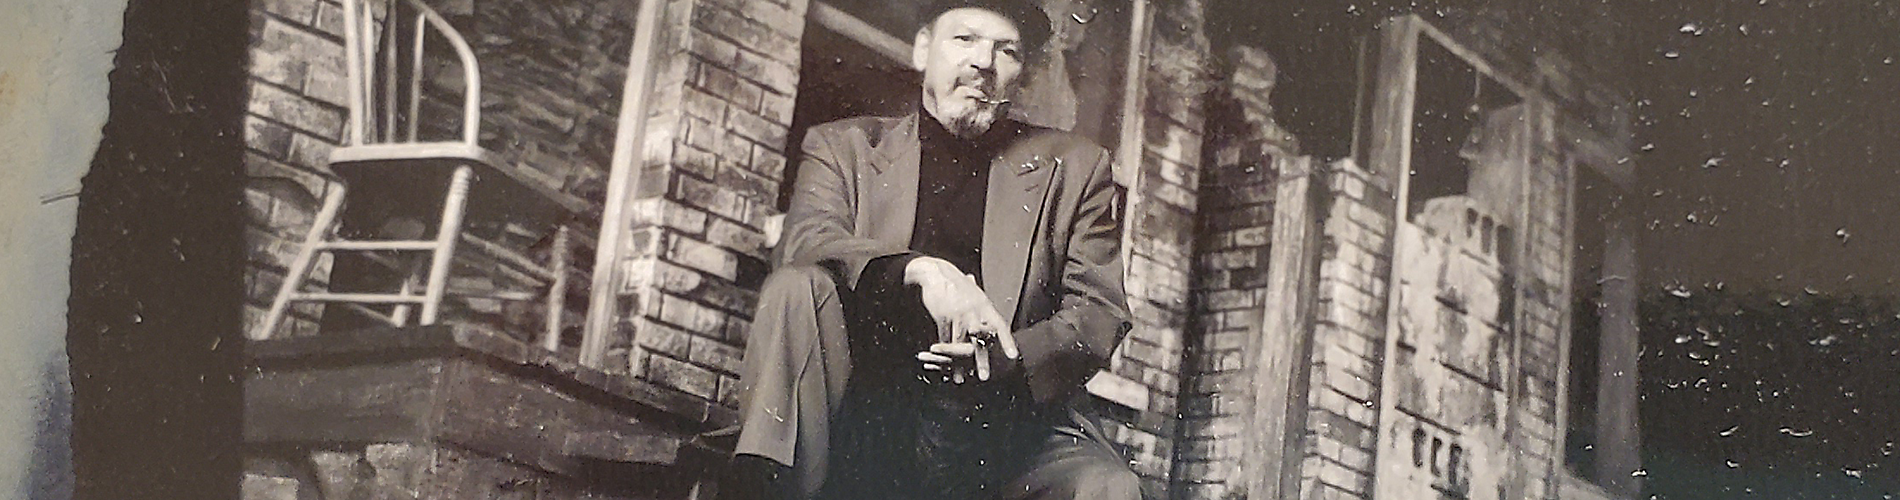 August Wilson sitting on steps.